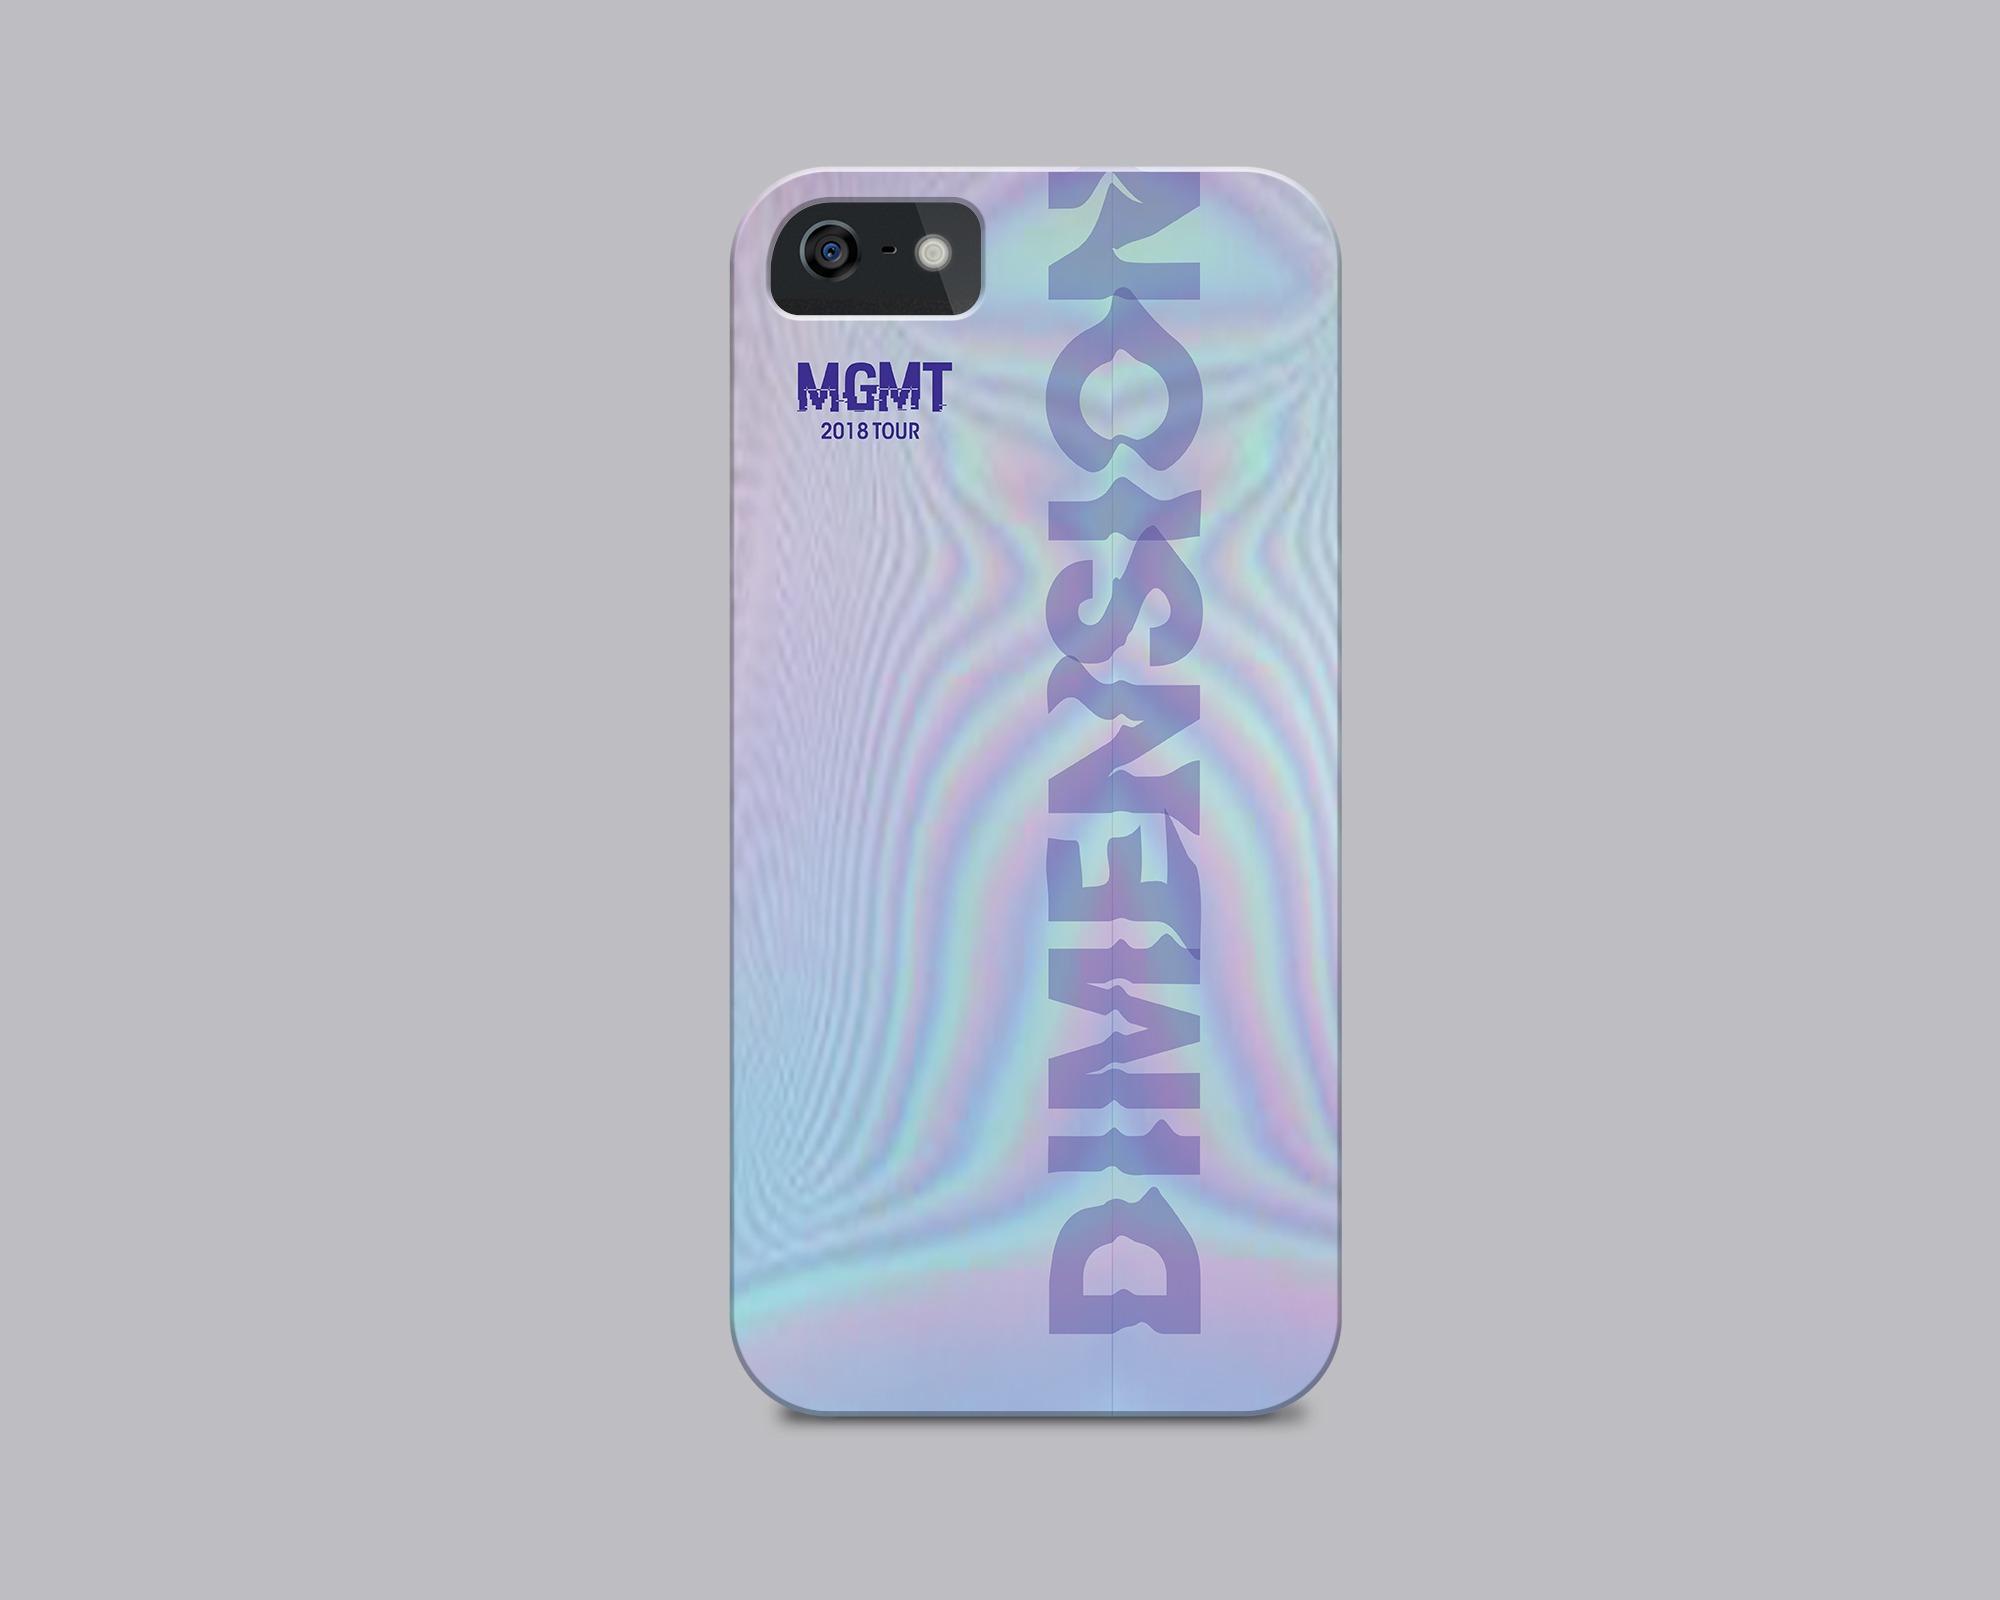 MGMT phone case mock up.jpg